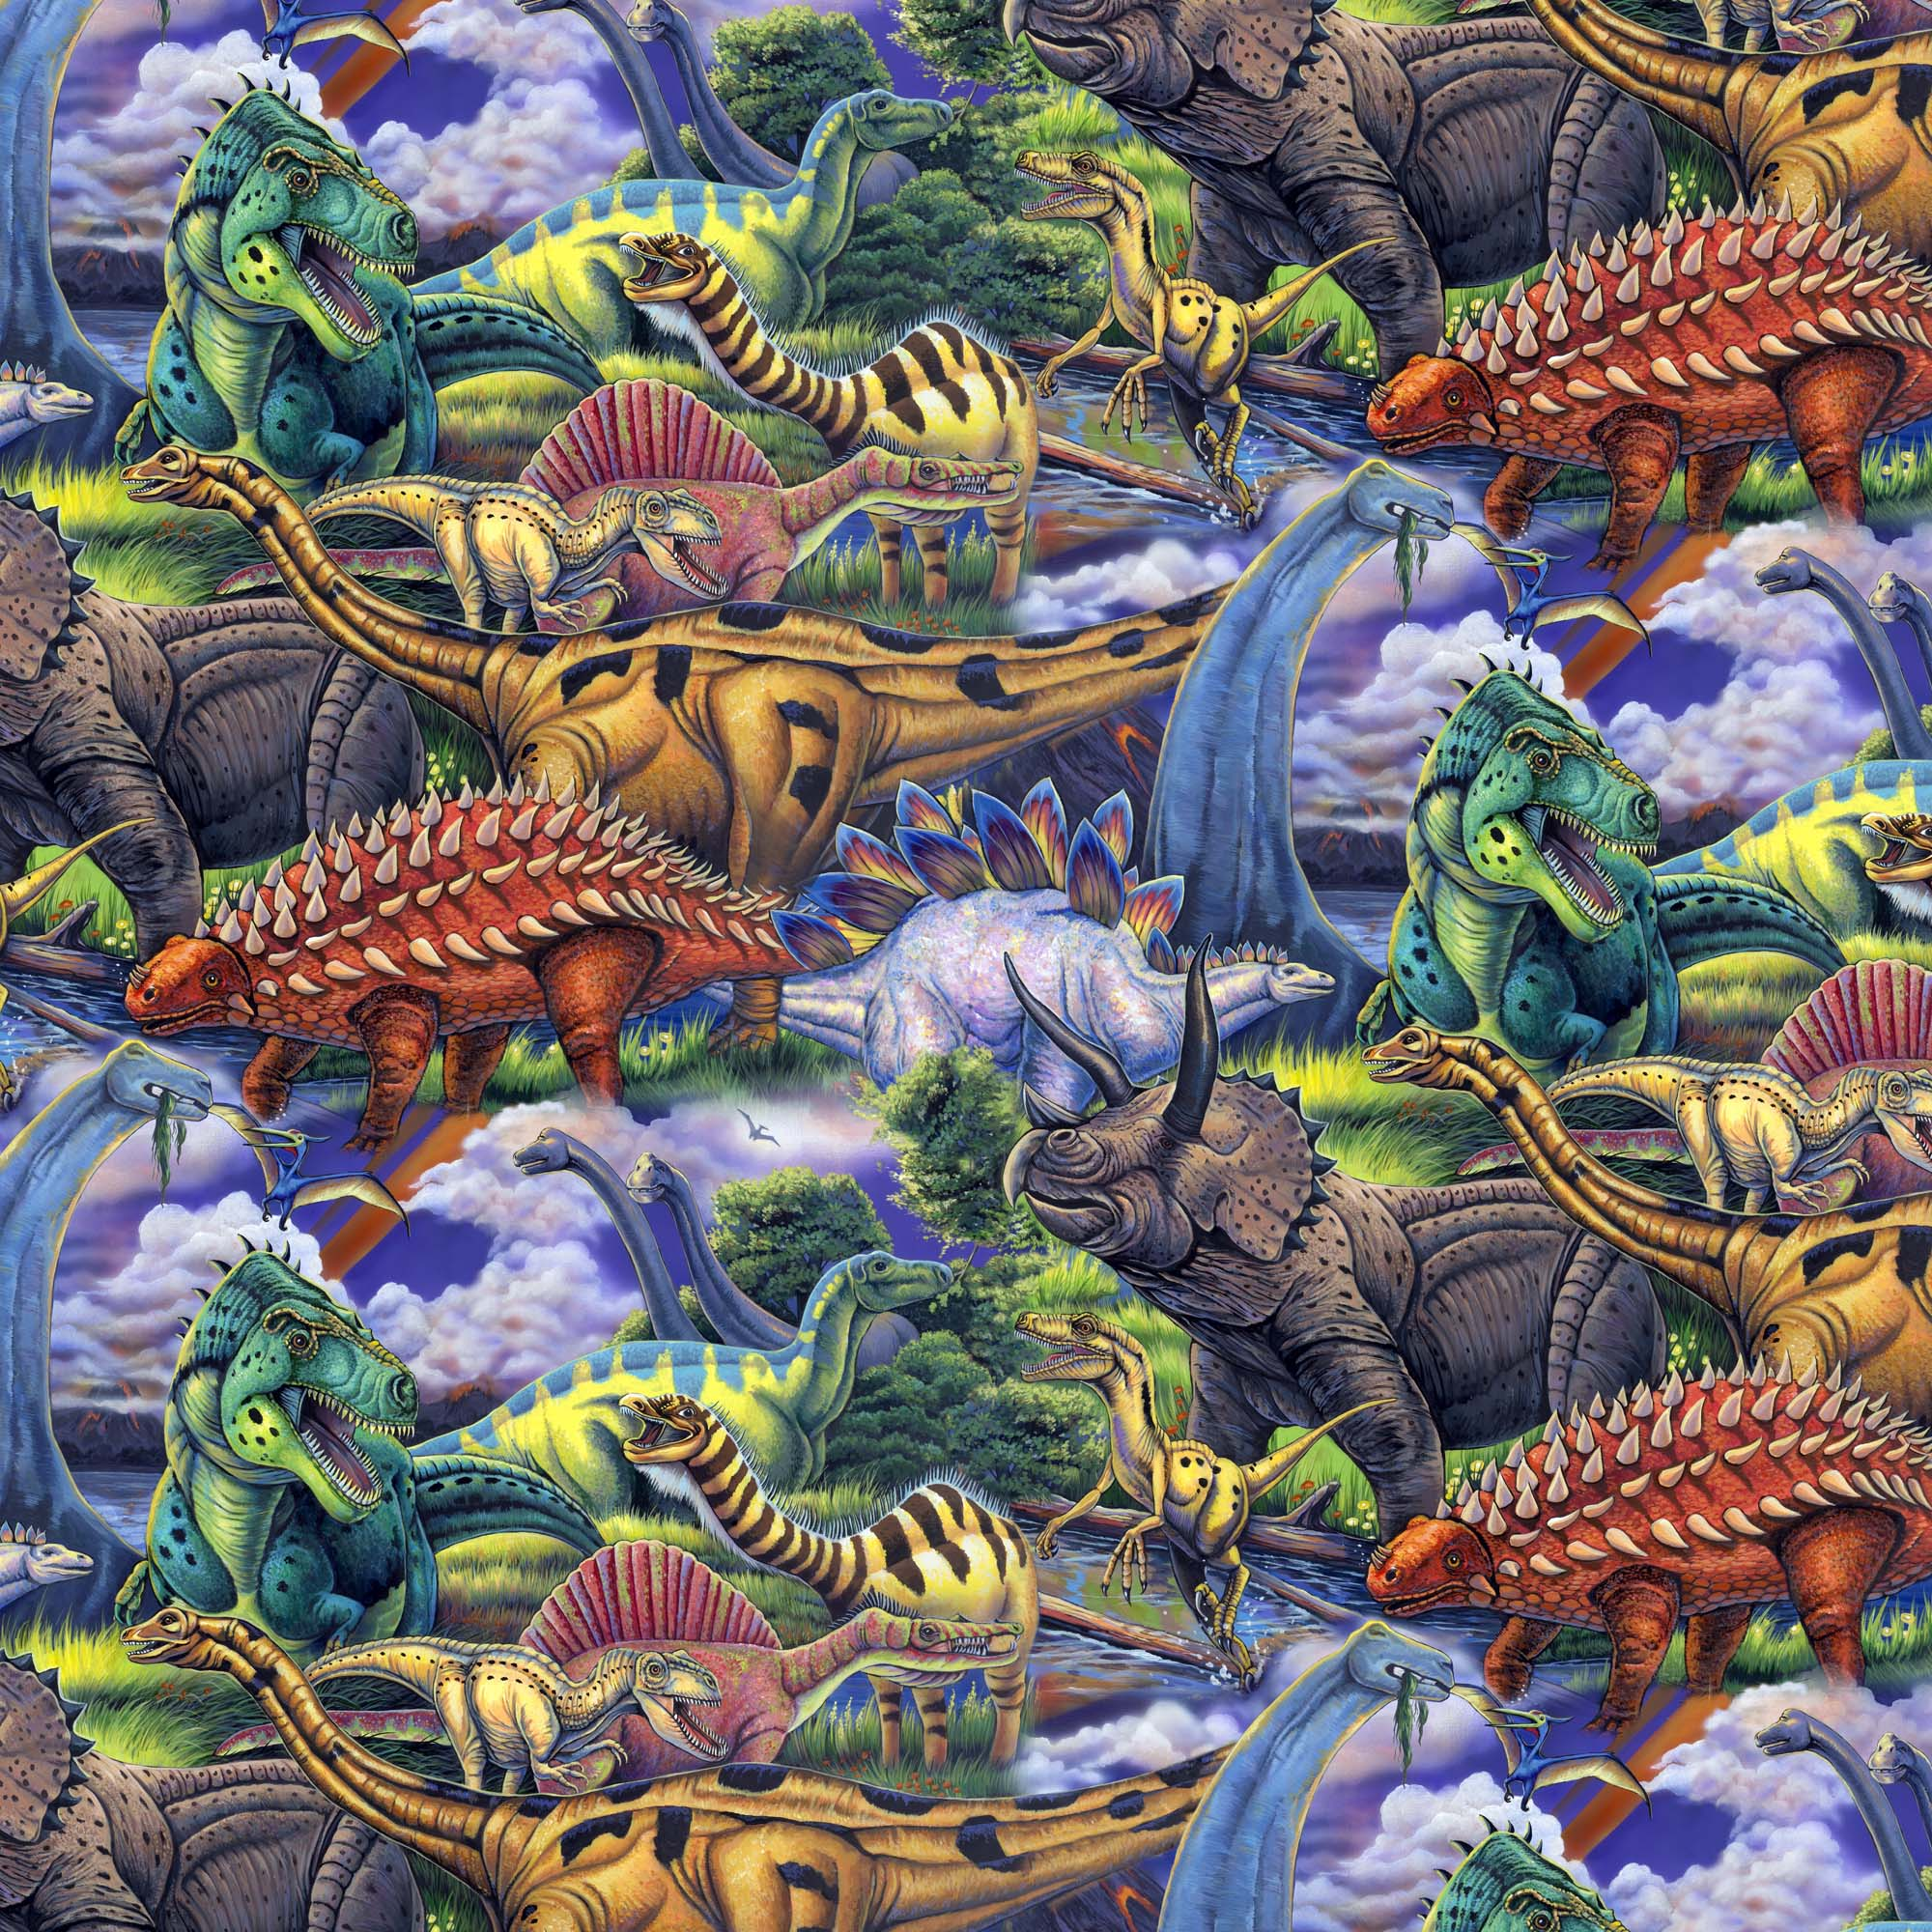 David Textiles Cotton Precut Fabric Dinosaurs 1 Yd X 44 Inches